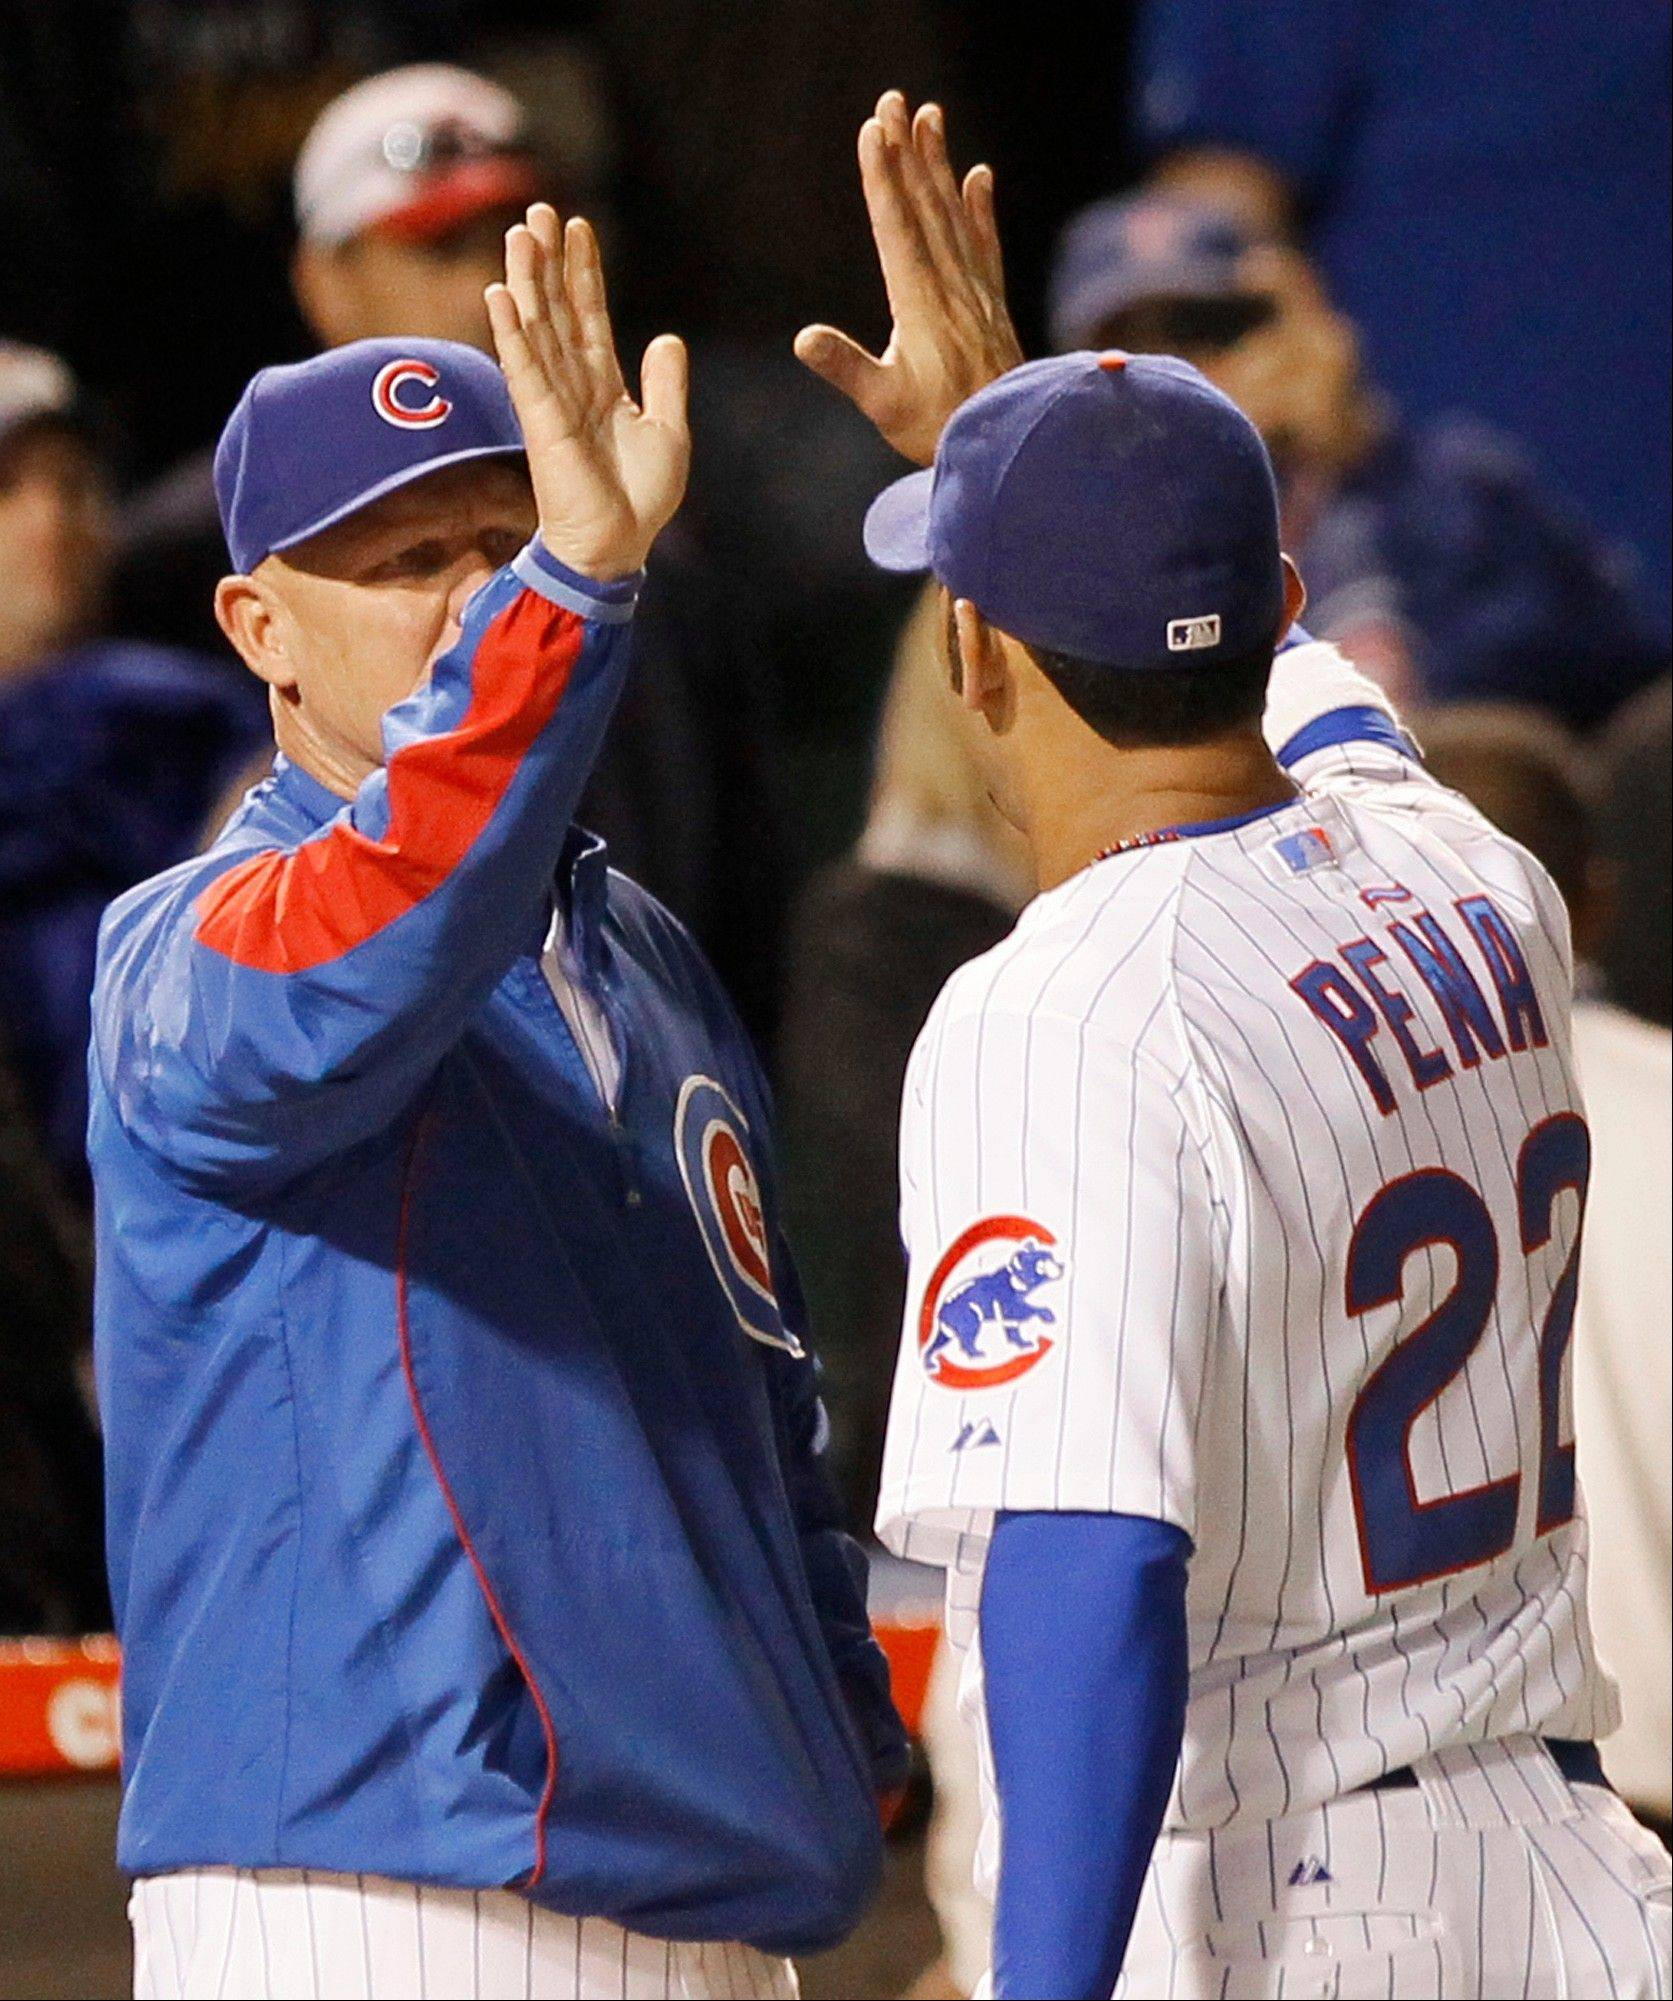 Chicago Cubs manager Mike Quade, left, celebrates with first baseman Carlos Pena after a baseball game and Cubs' 6-3 win over the Cincinnati Reds, Wednesday, Sept. 7, 2011 in Chicago.